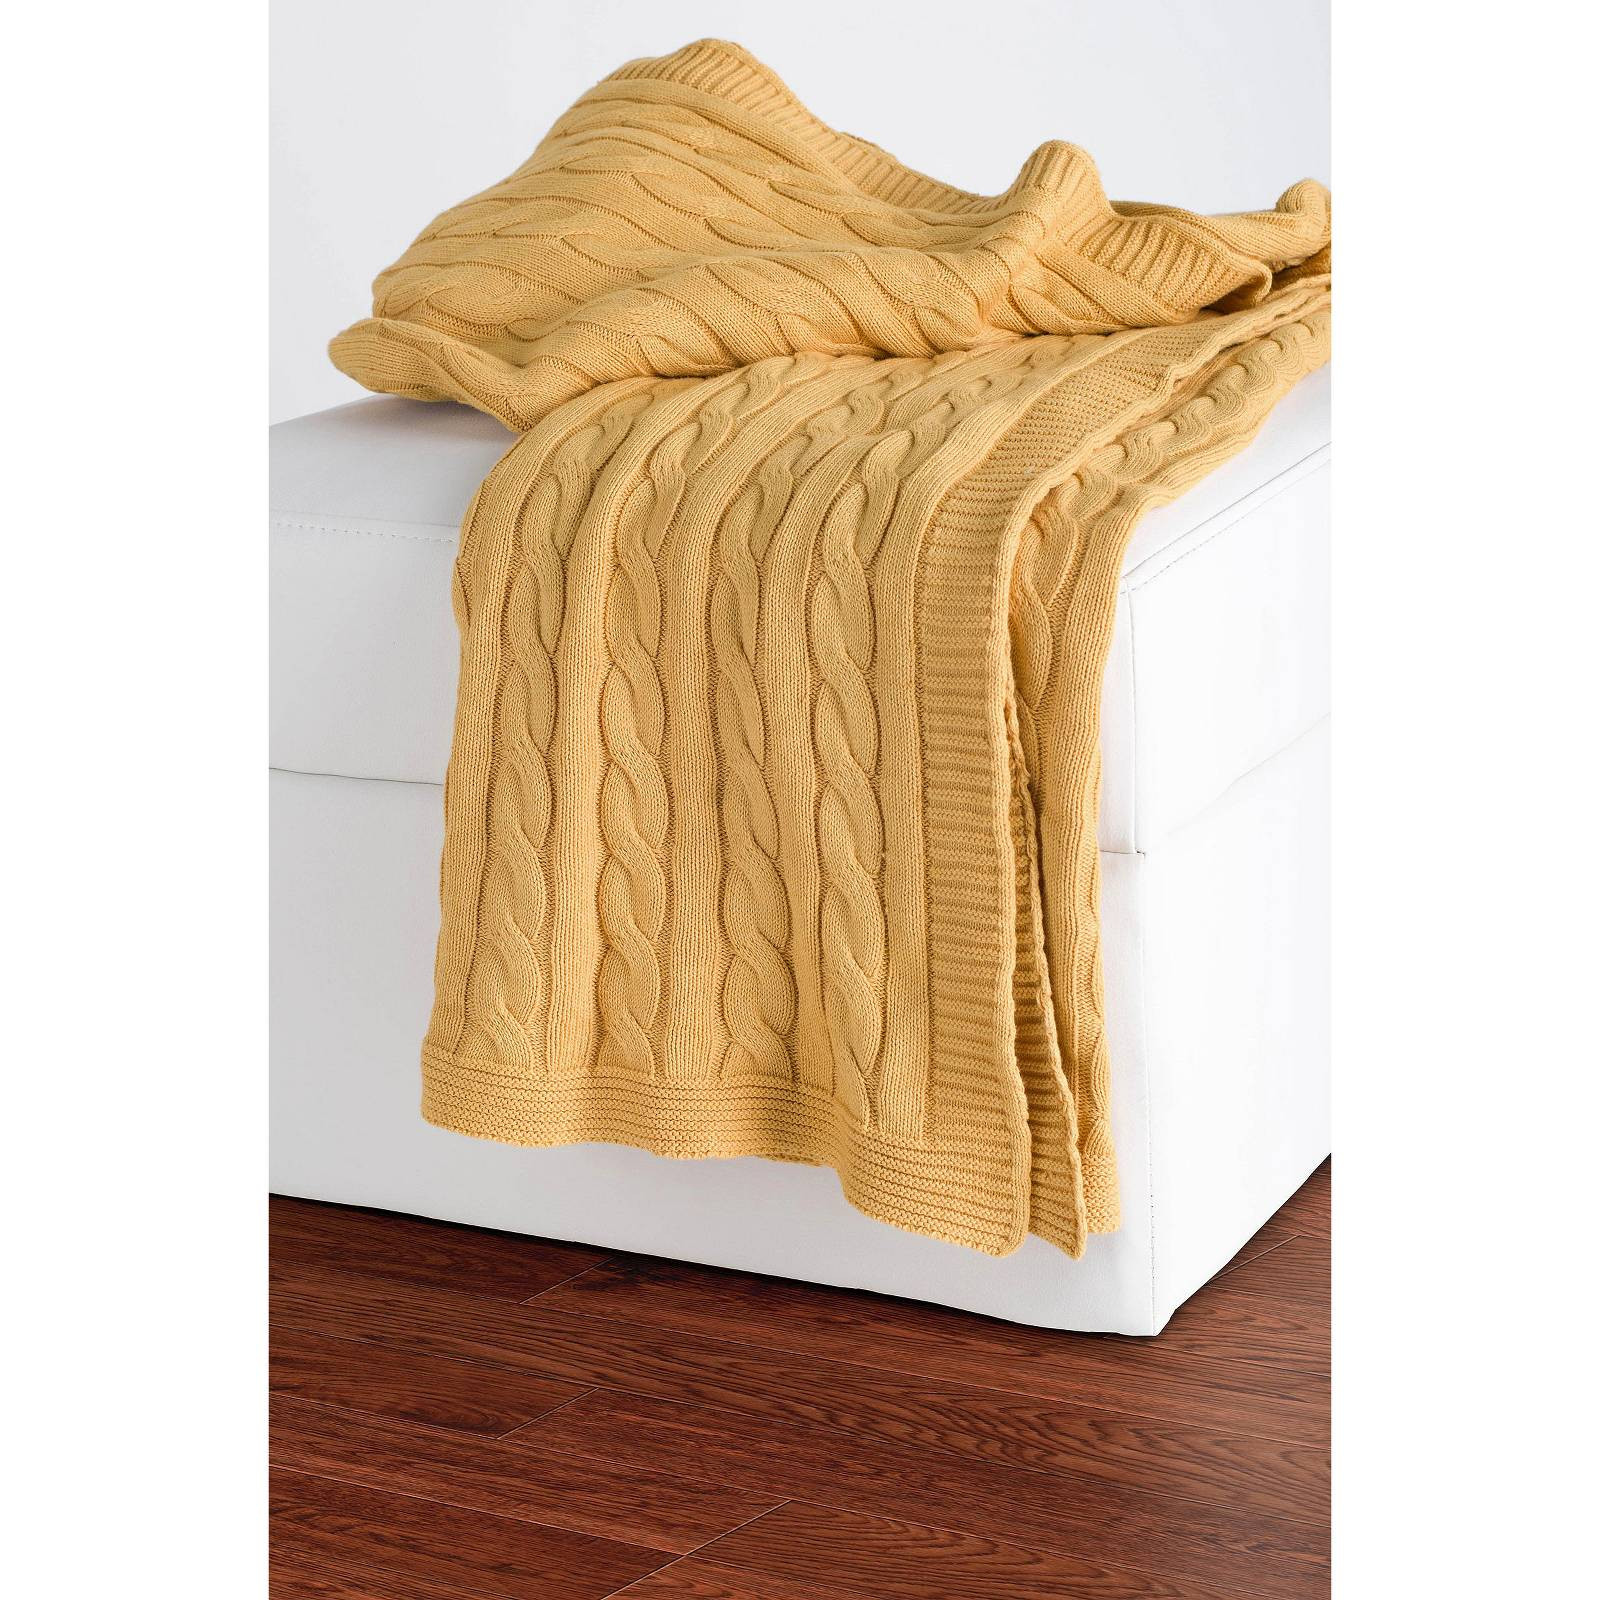 Cable Knit Throw Unique Cable Knit Sweater Throw Rizzy Home Of Charming 49 Models Cable Knit Throw